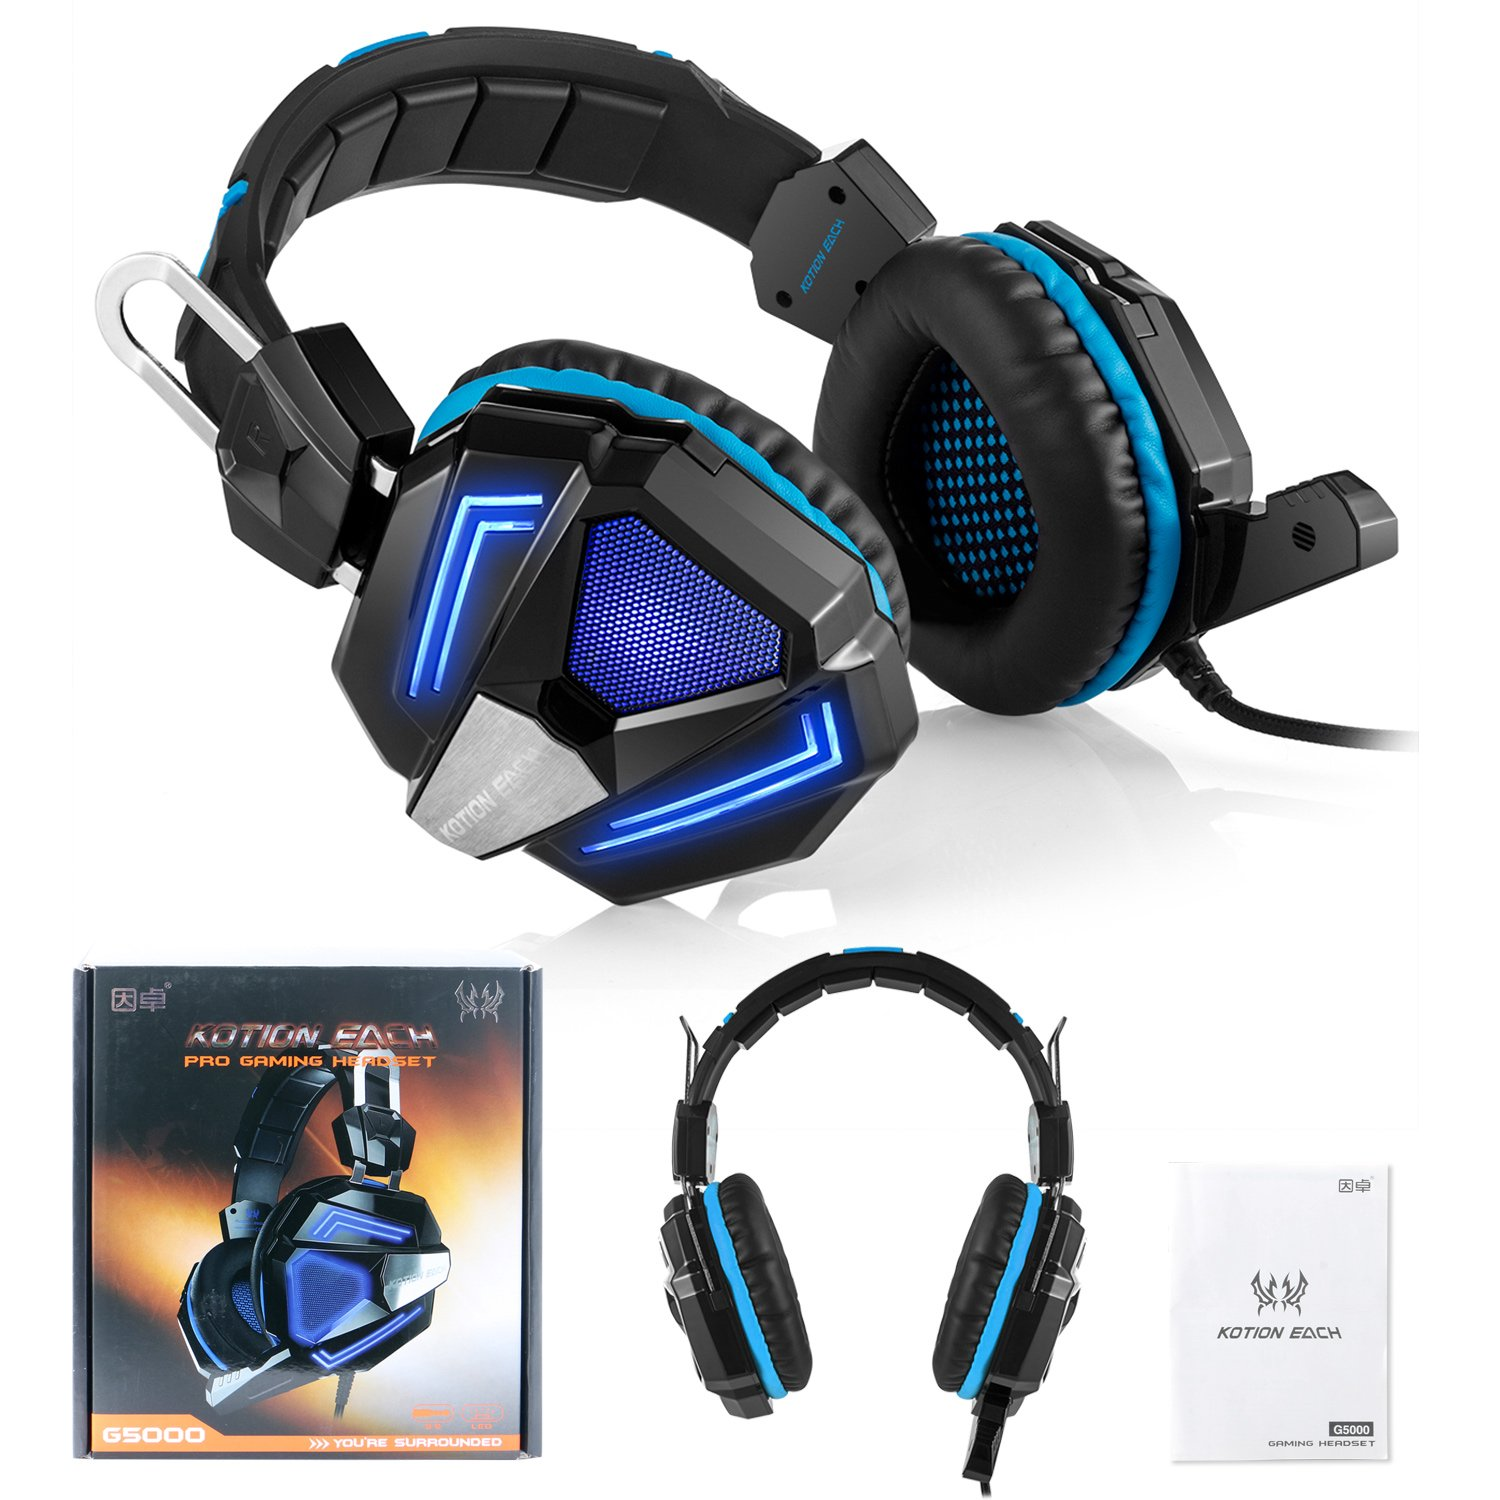 Zakitane KOTION EACH G5000 3.5mm PC Stereo Gaming Headset, Bass Headphones, Comfortable Headband with Microphone, Over-ear fit with Noise isolation, Breathing LED Light for Laptops or Computers